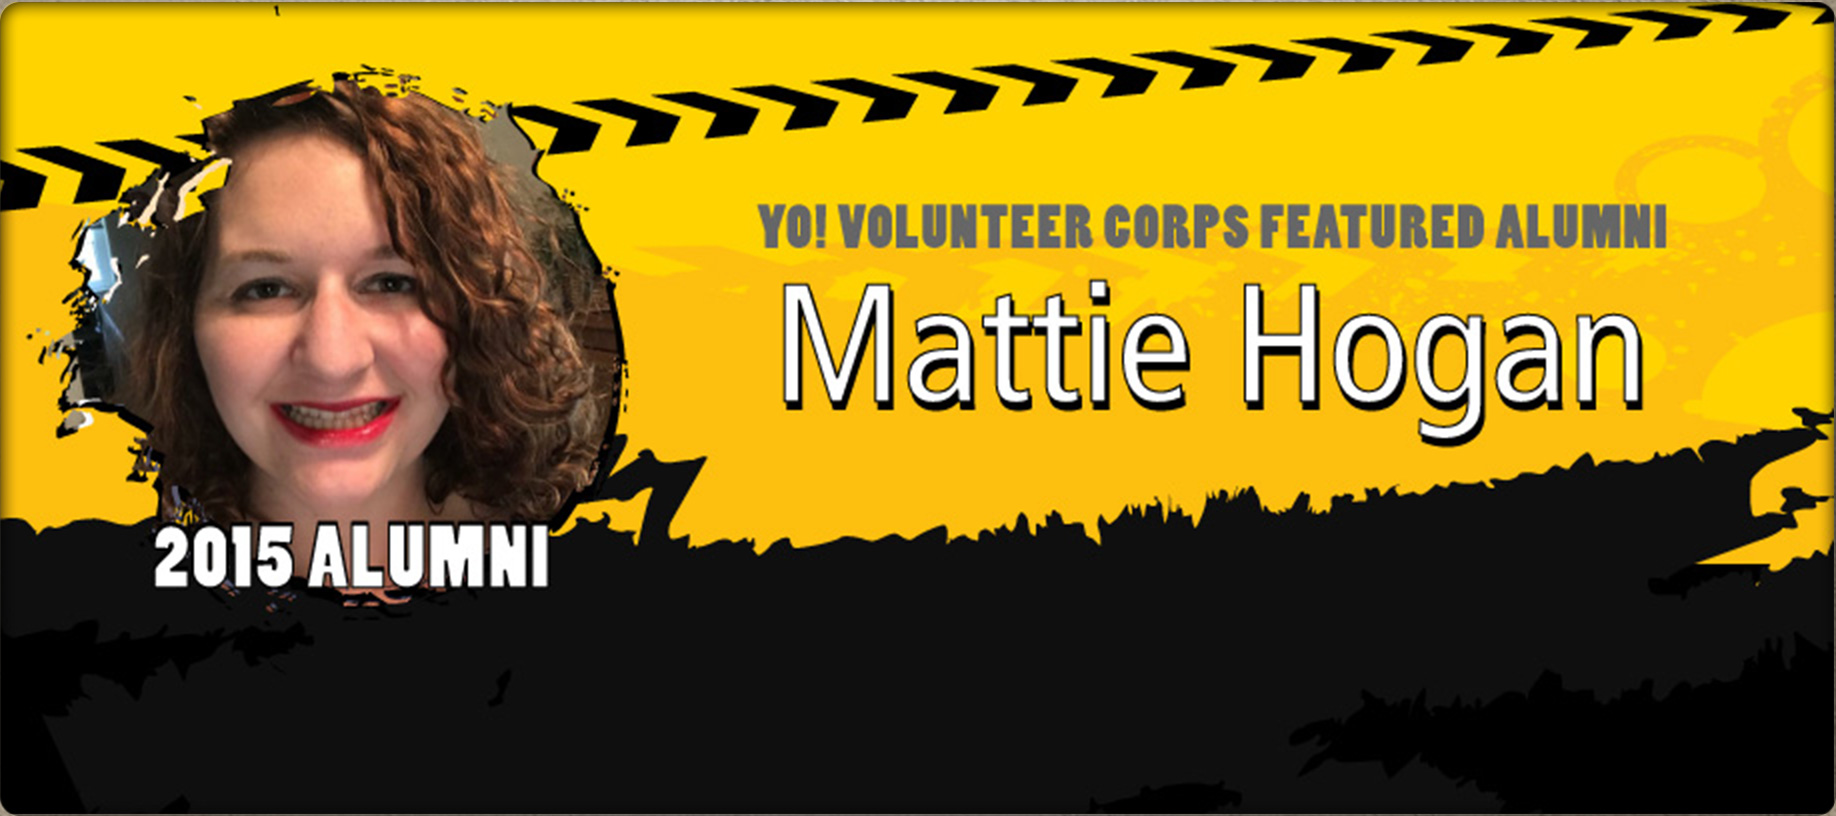 Banner of YO! Volunteer Corps Featured Alumni Mattie Hogan. 2015 Alumni.